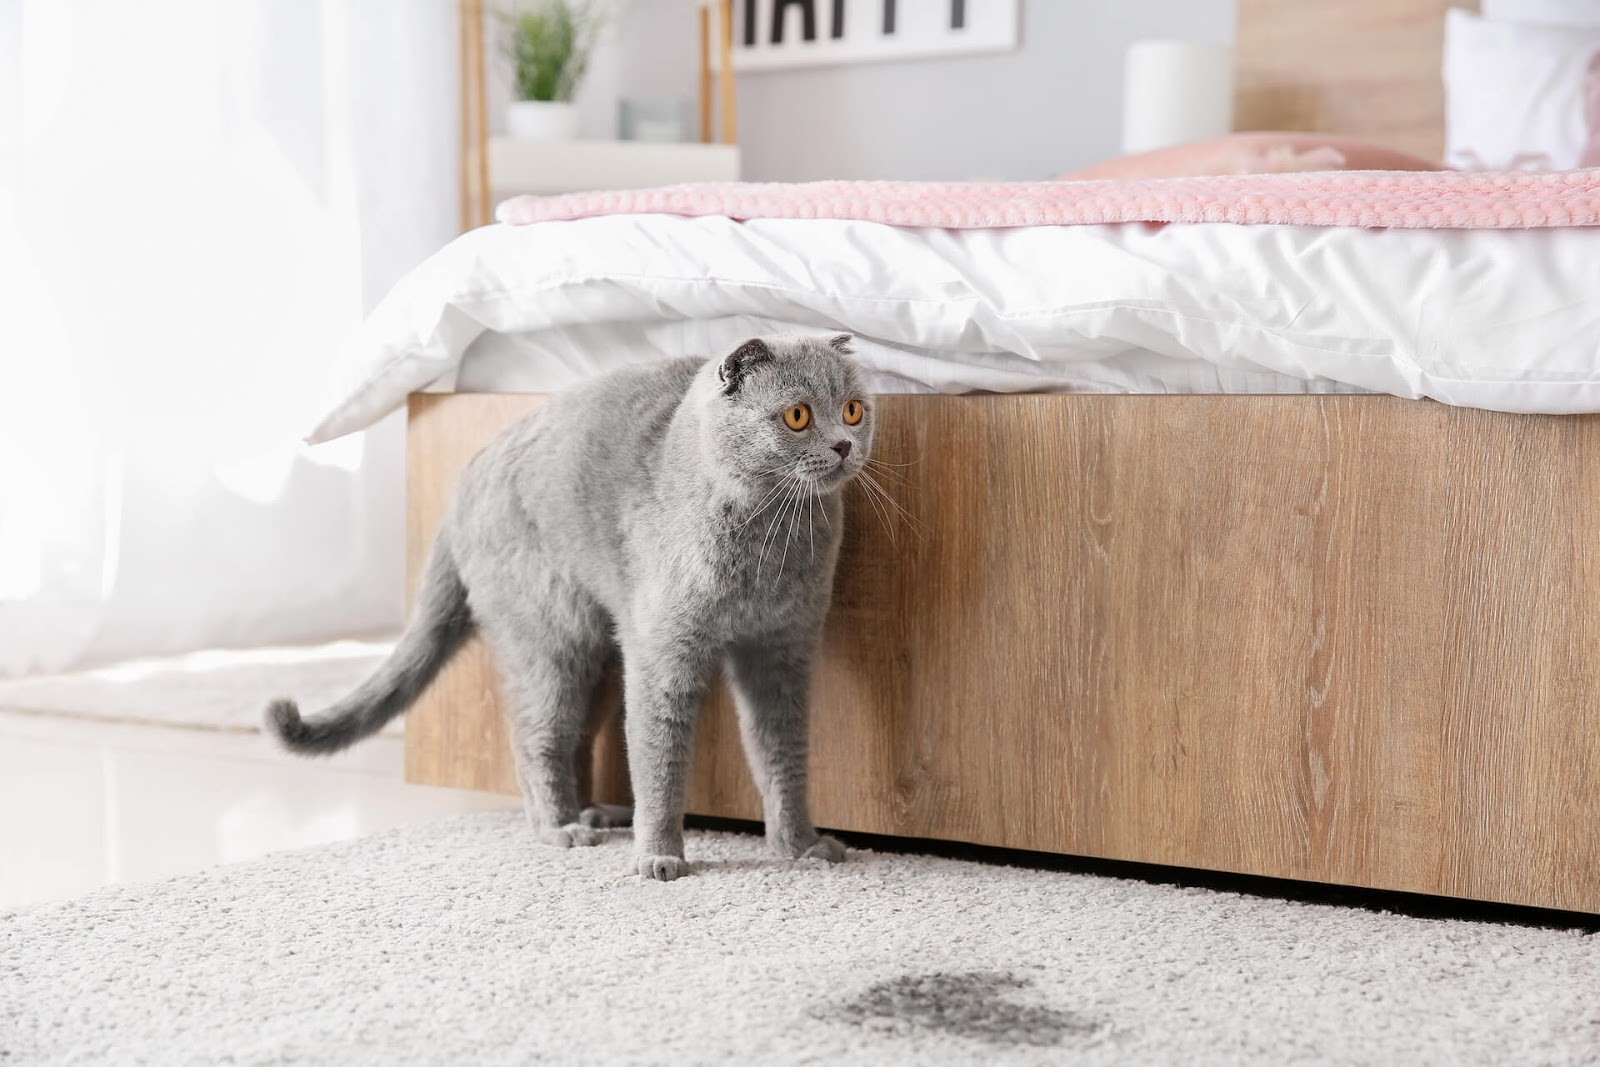 Stressed out cat next to a puddle of pee on the carpet